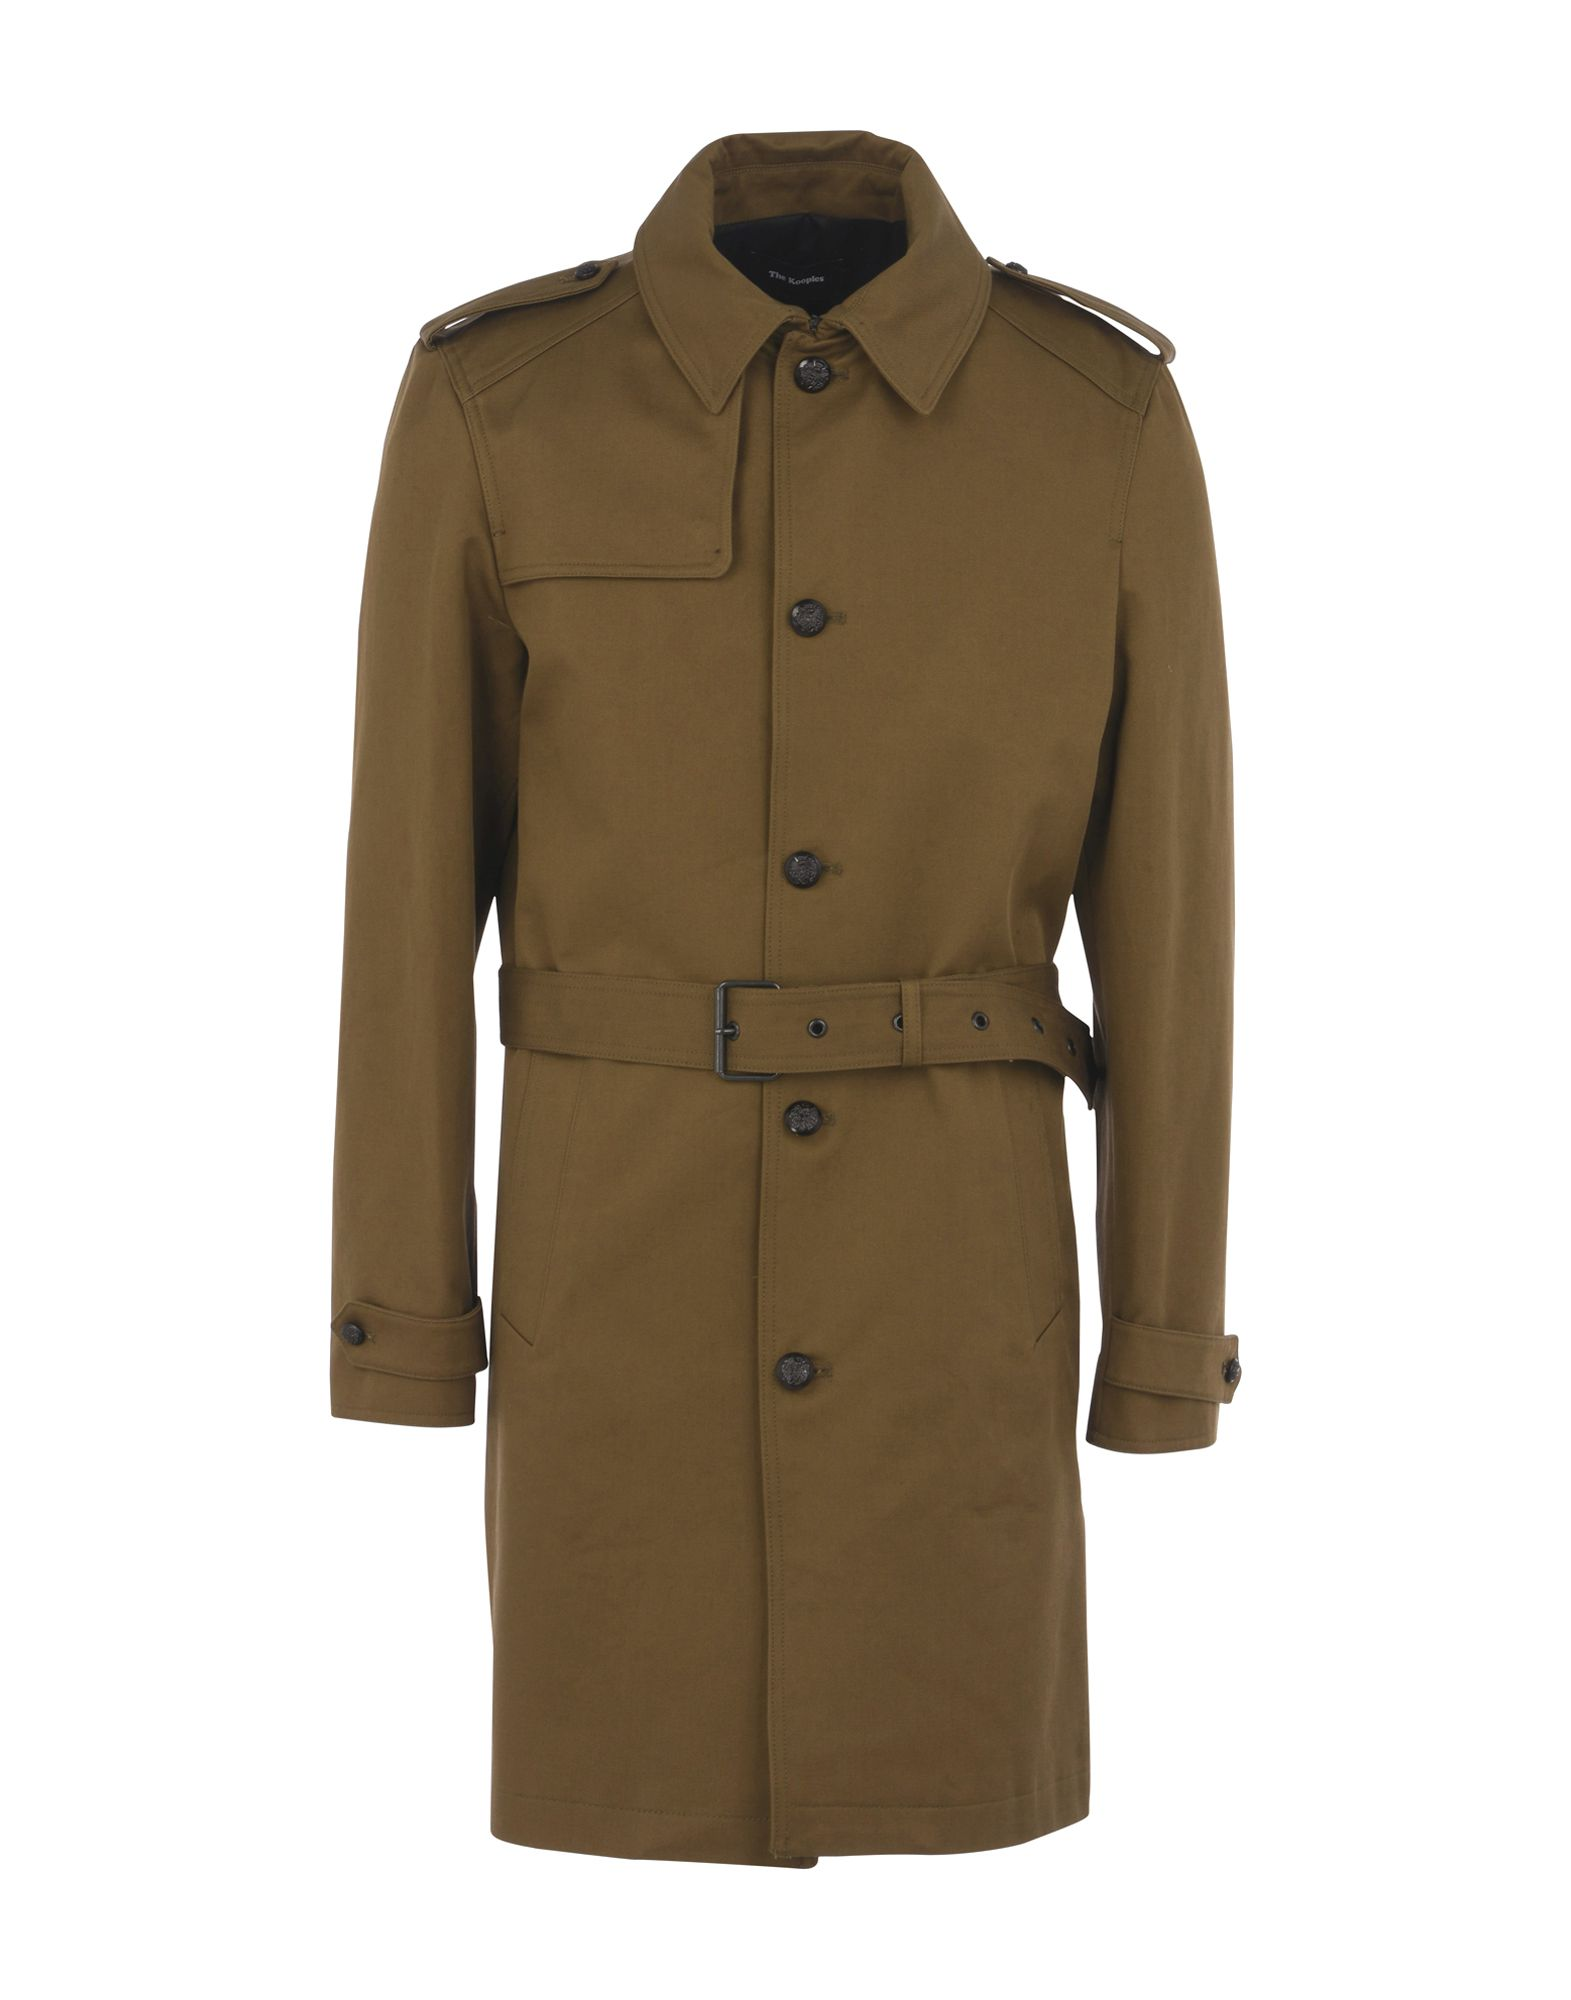 Cappotto The Kooples Trench Coat With Officer Buttons - Donna - Acquista online su